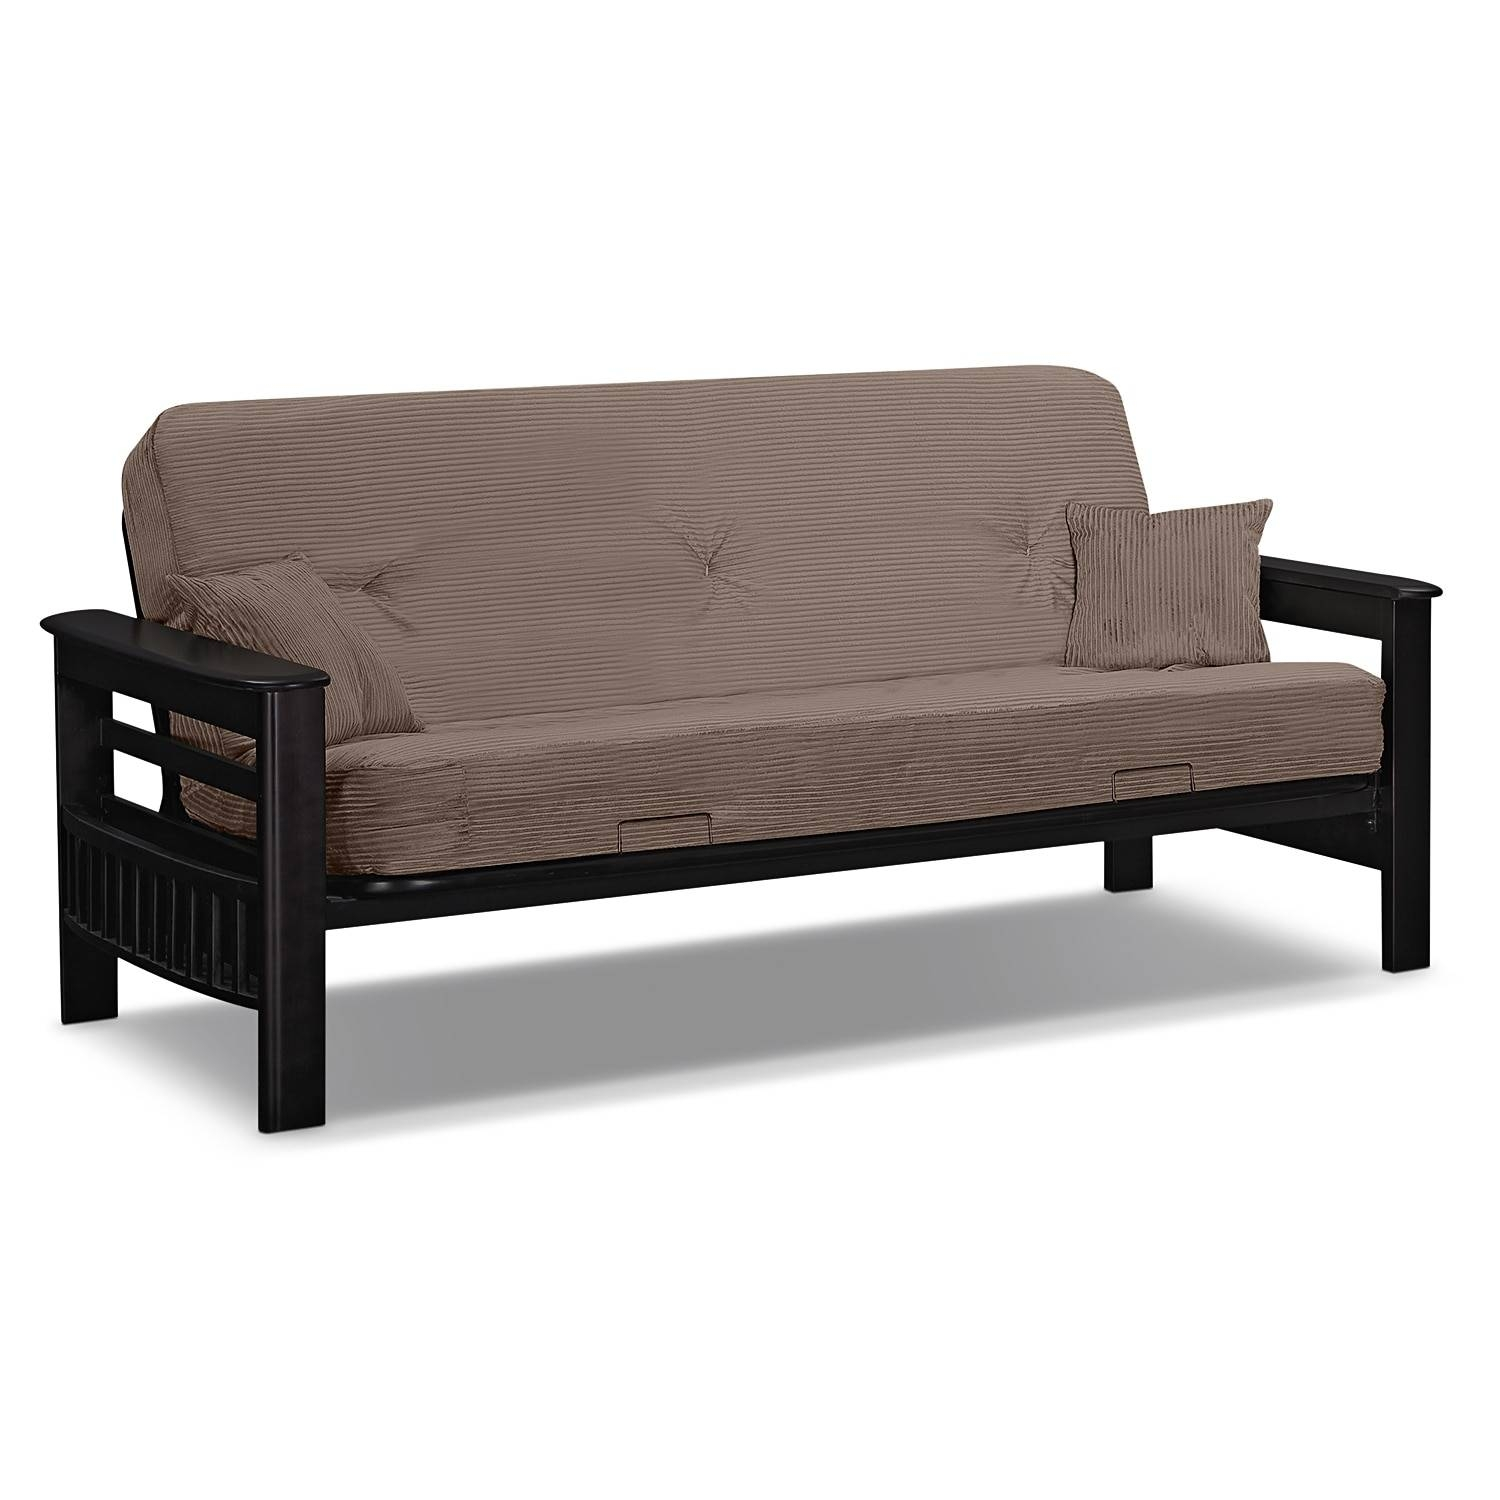 Tampa Futon Sofa Bed - Beige | Value City Furniture regarding Sofas Tampa (Image 24 of 25)